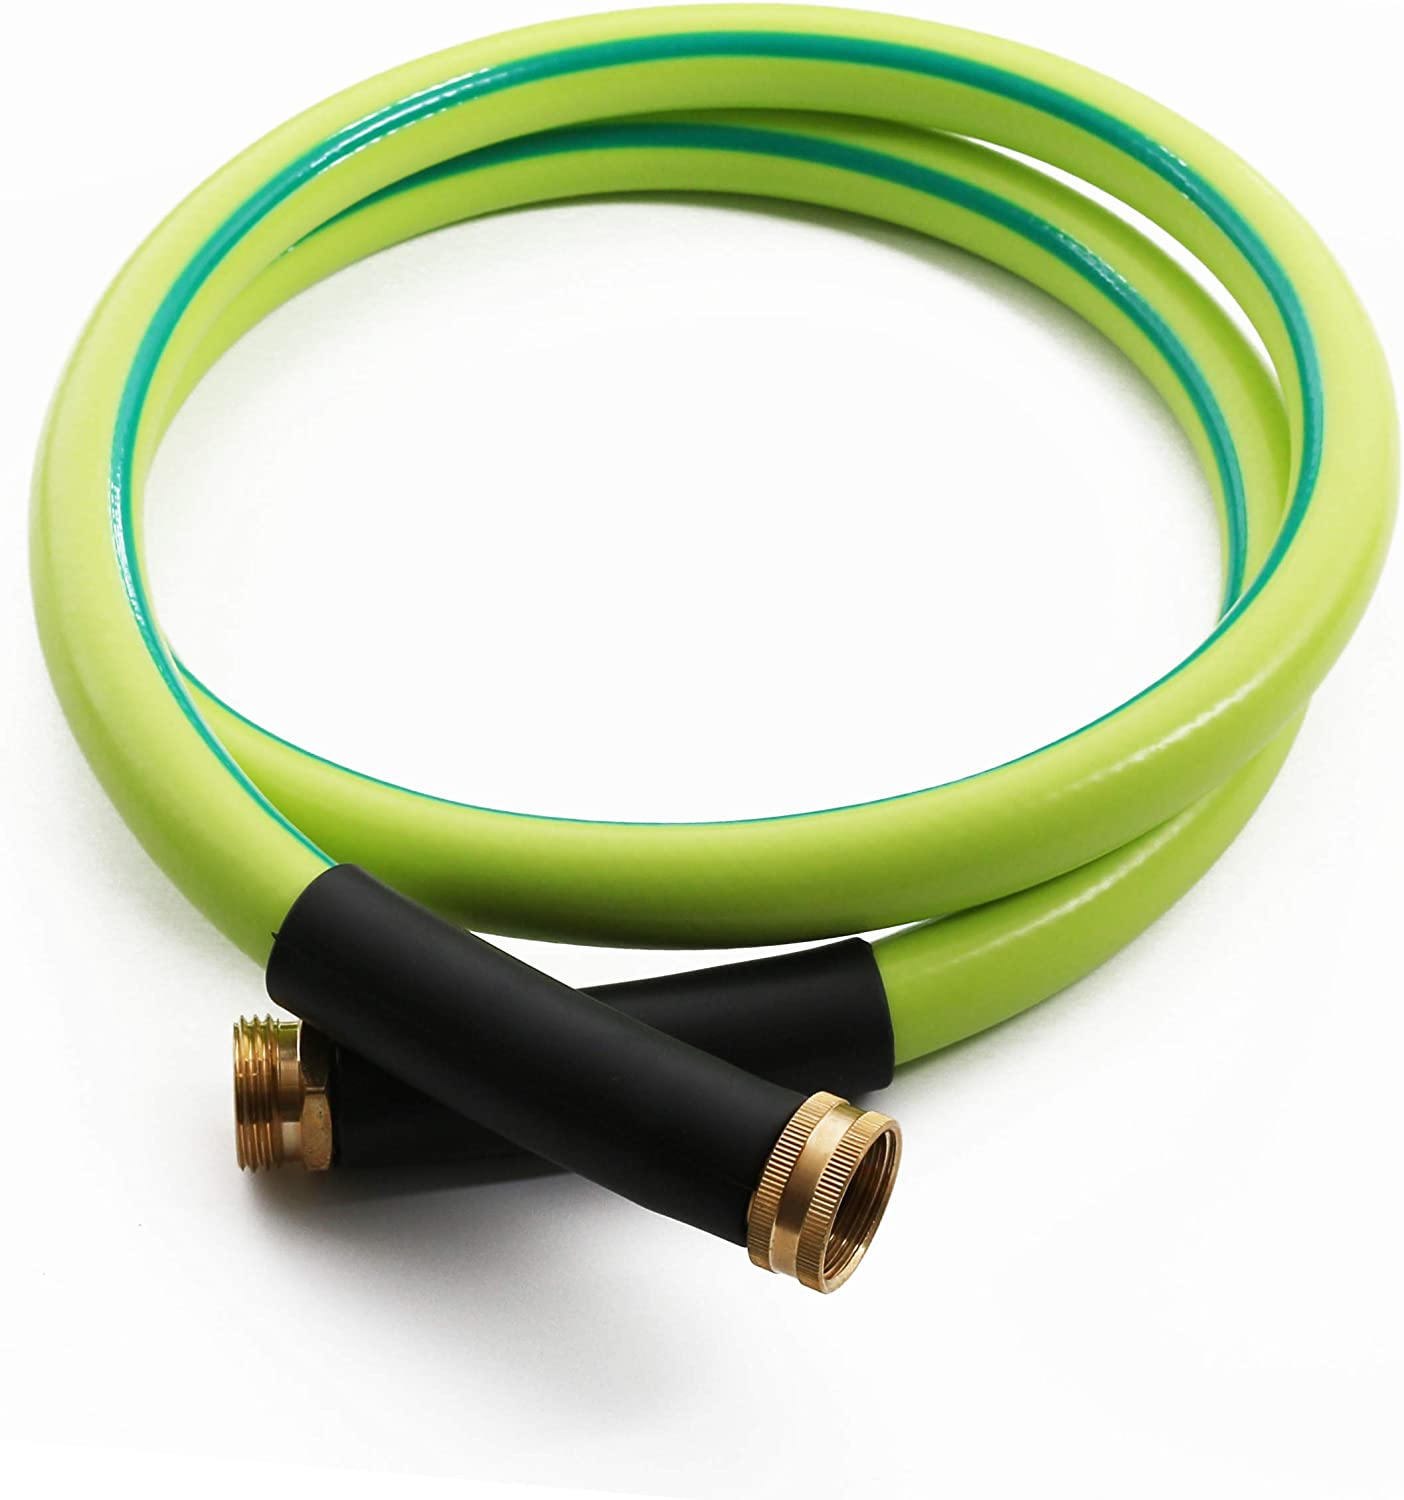 Atlantic Premium Hybrid Garden Hose 5/8 IN x 6 FT, Light Weight and Coils Easily, Kink Resistant,Abrasion Resistant, Extreme All Weather Flexibility (6 FT)